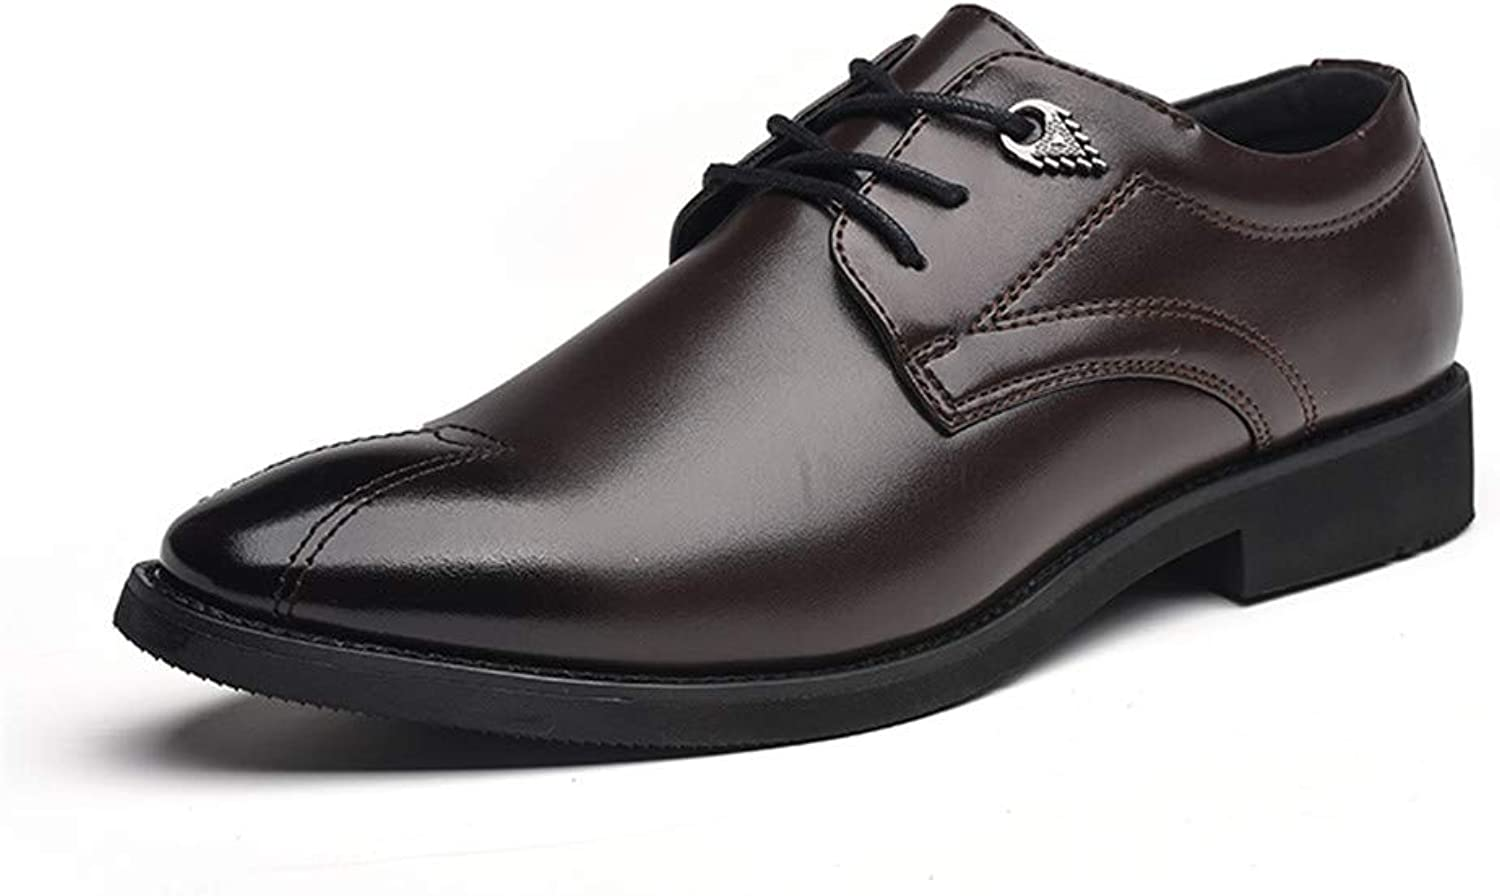 shoes Men's Business Oxford Fashion New Anti-Skid Shock Absorber Solid color Formal shoes Leather shoes